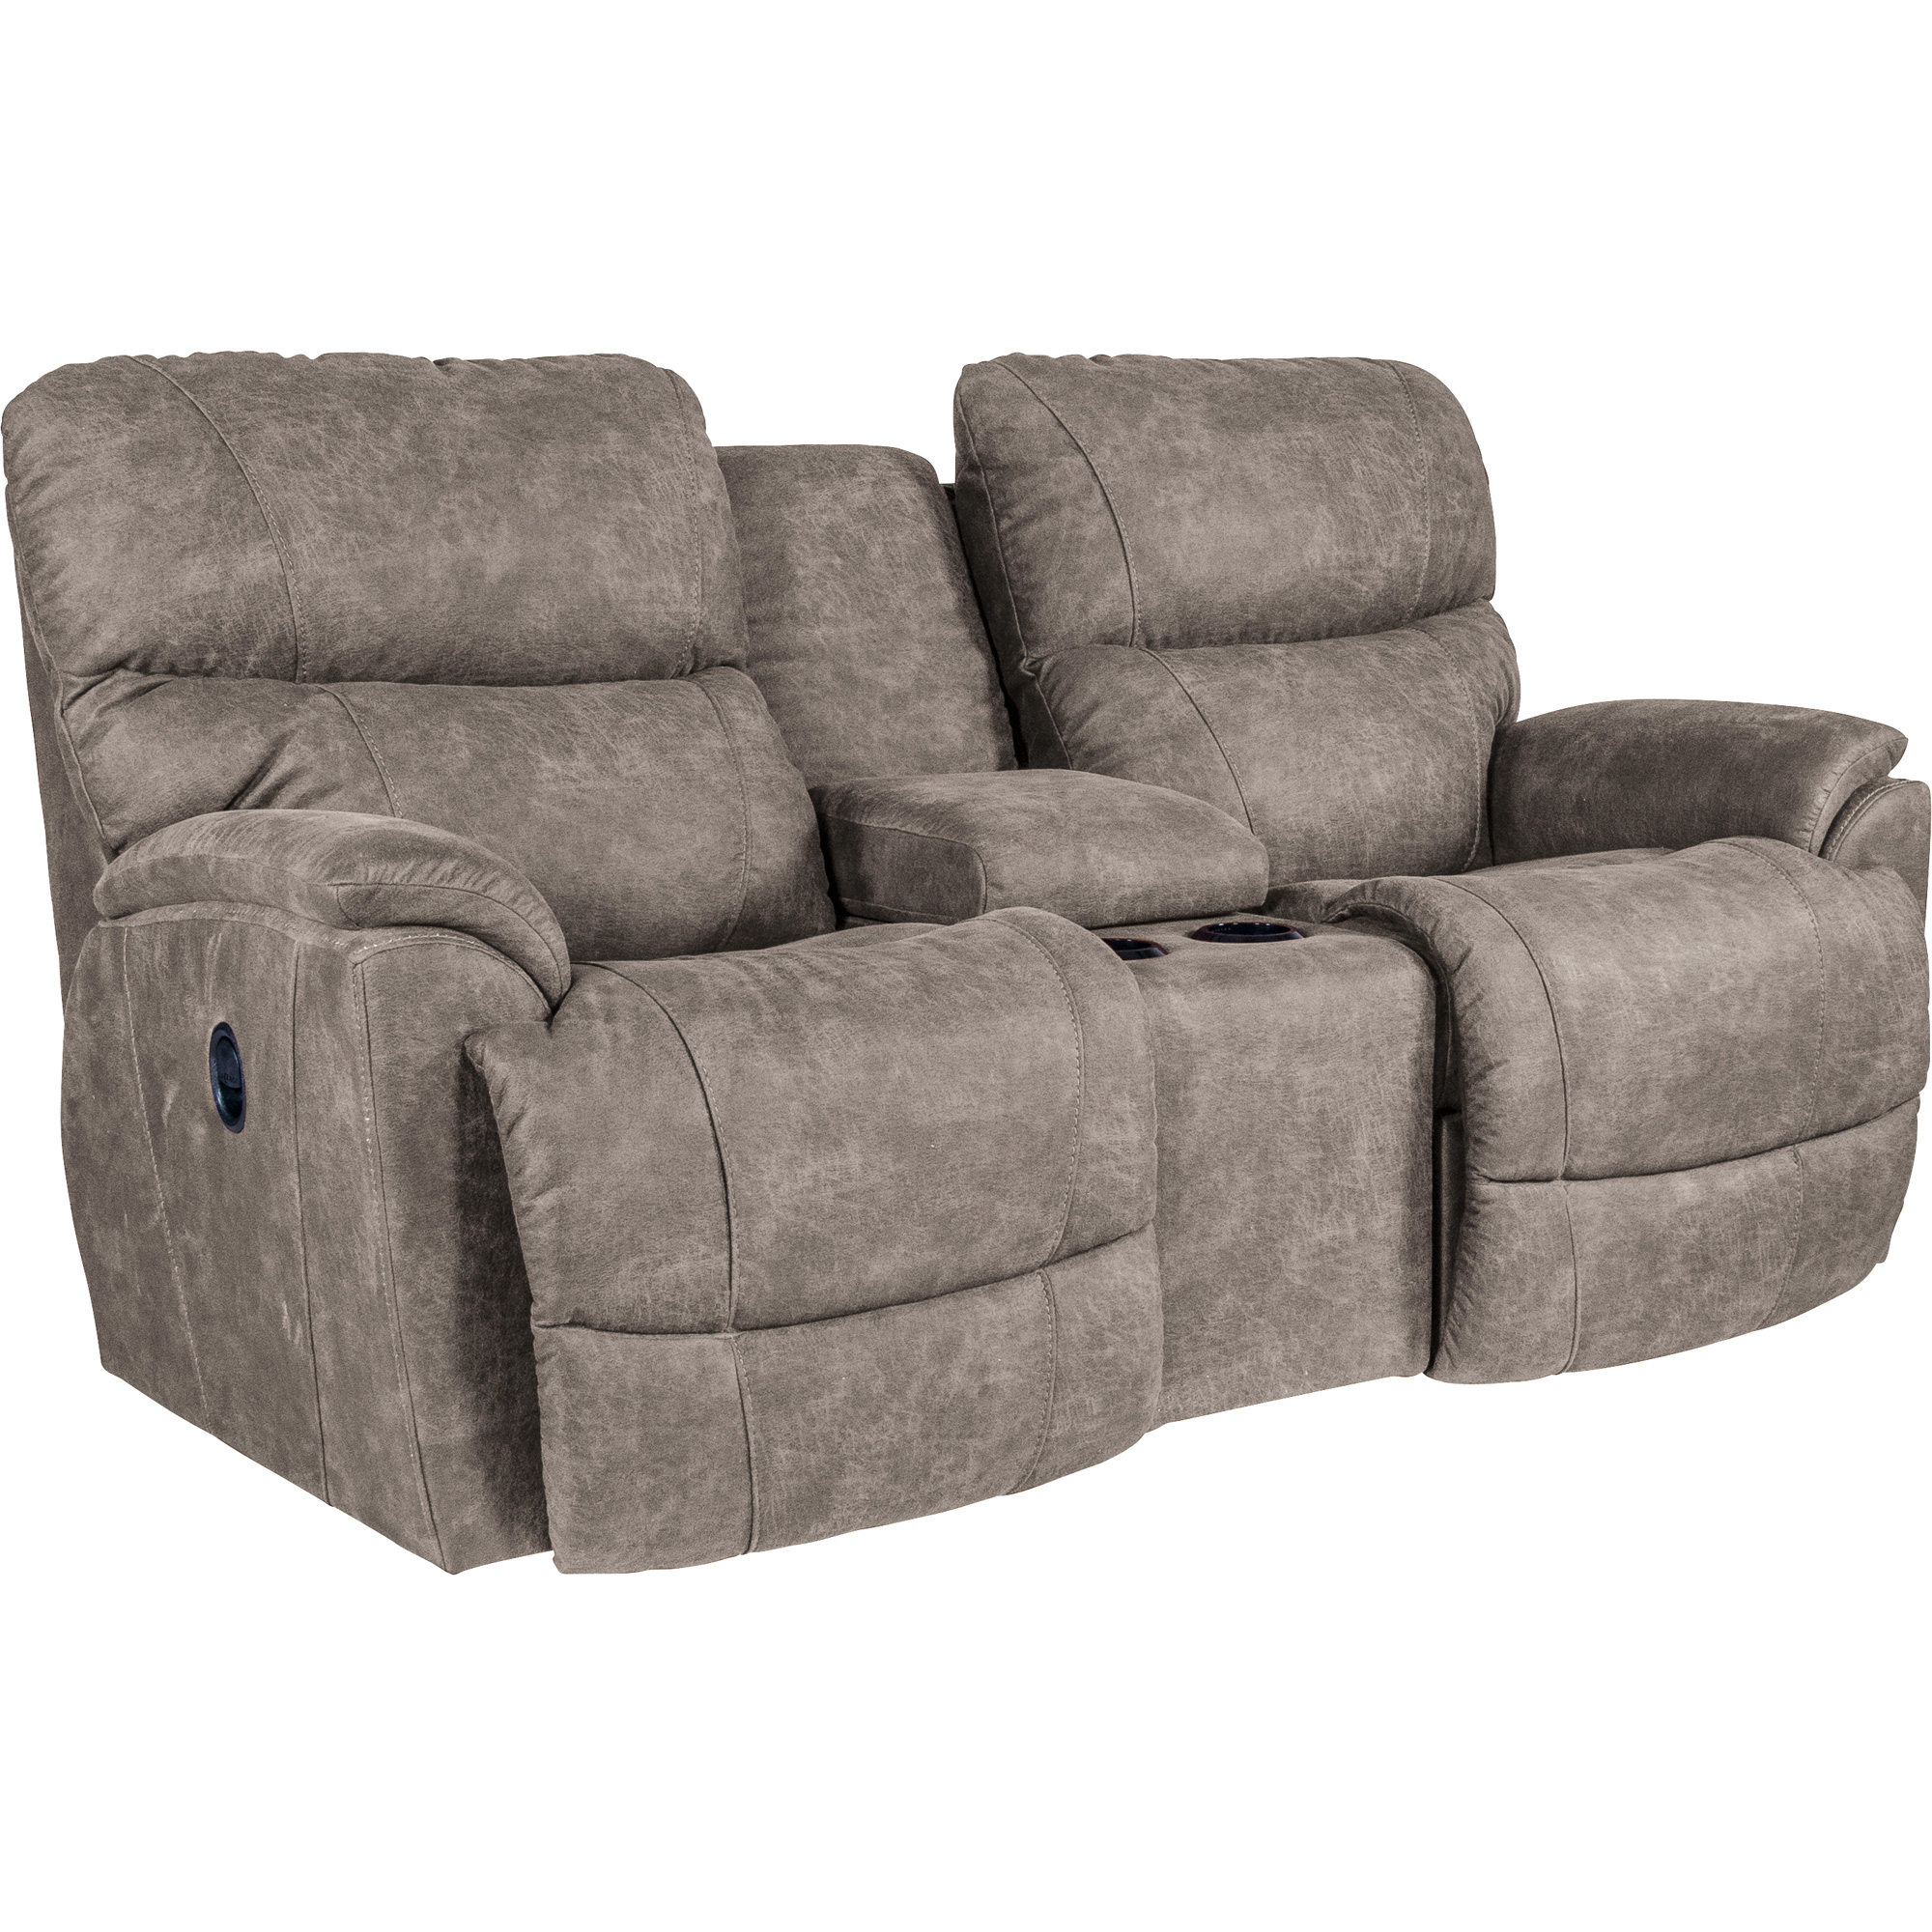 La-Z-Boy | Trouper Sable Reclining Console Loveseat Sofa